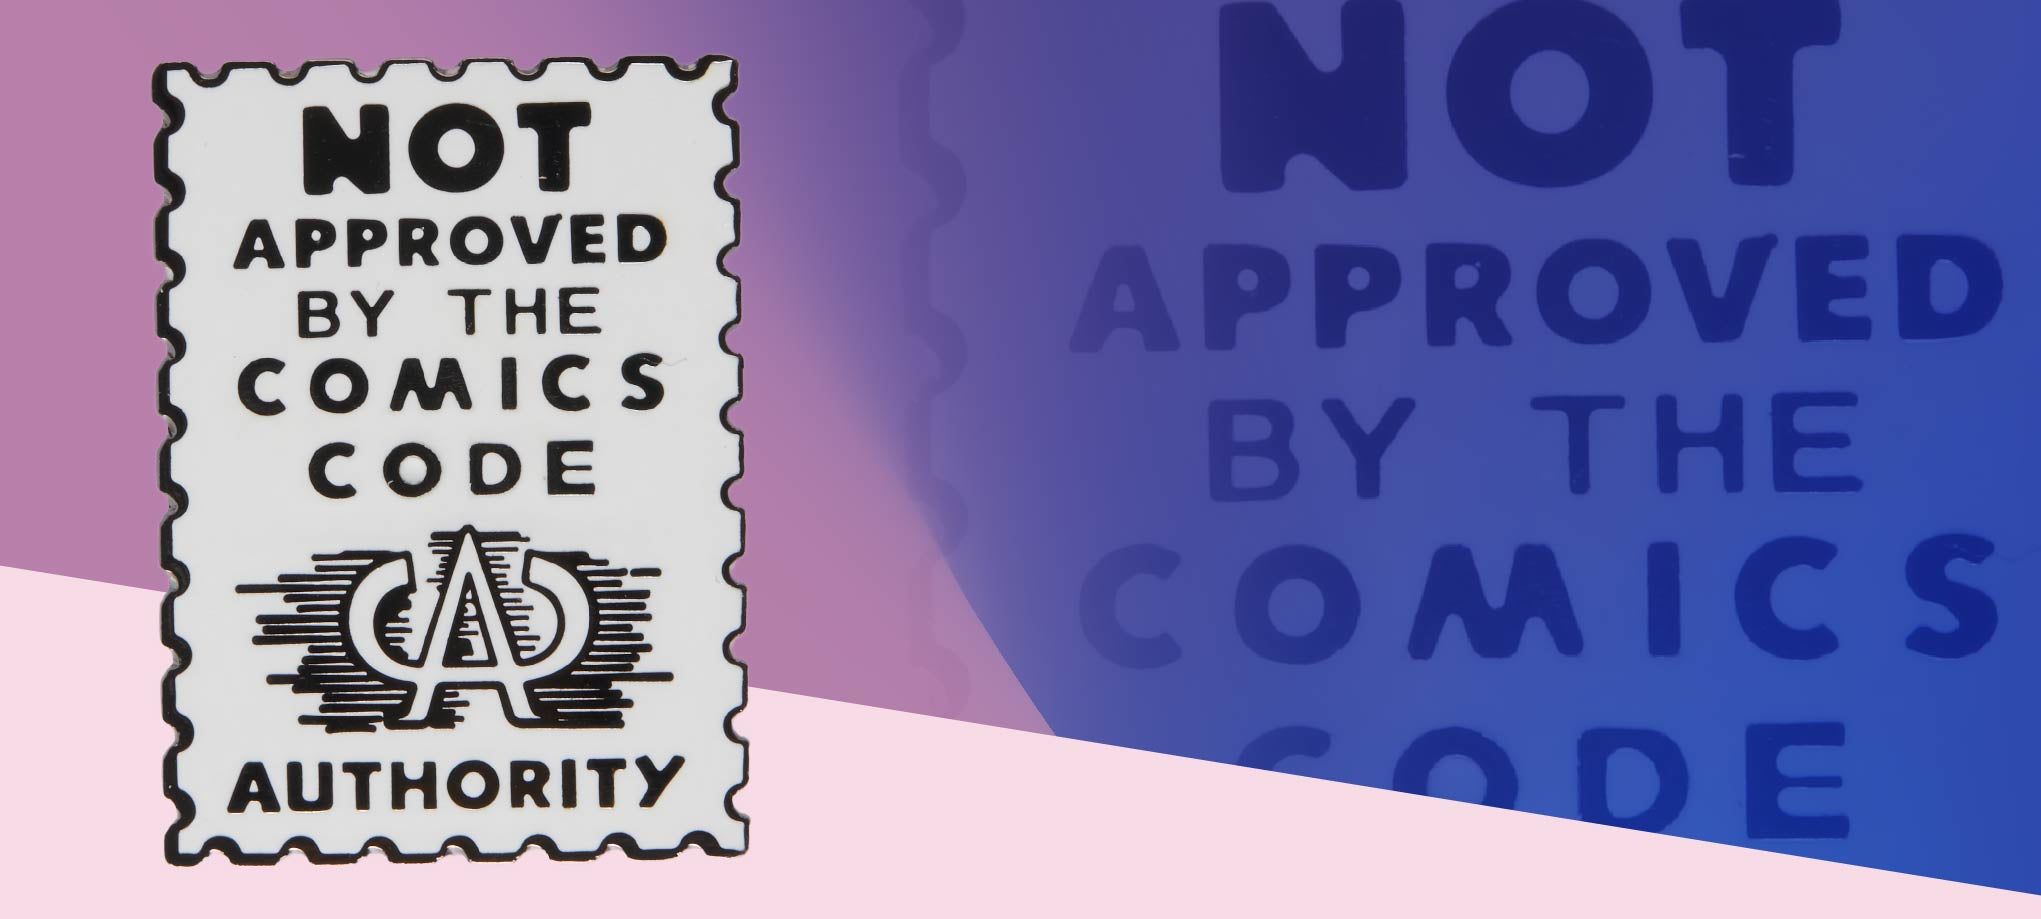 Not Approved Comic Pin Pin Data Crew | DataCrew